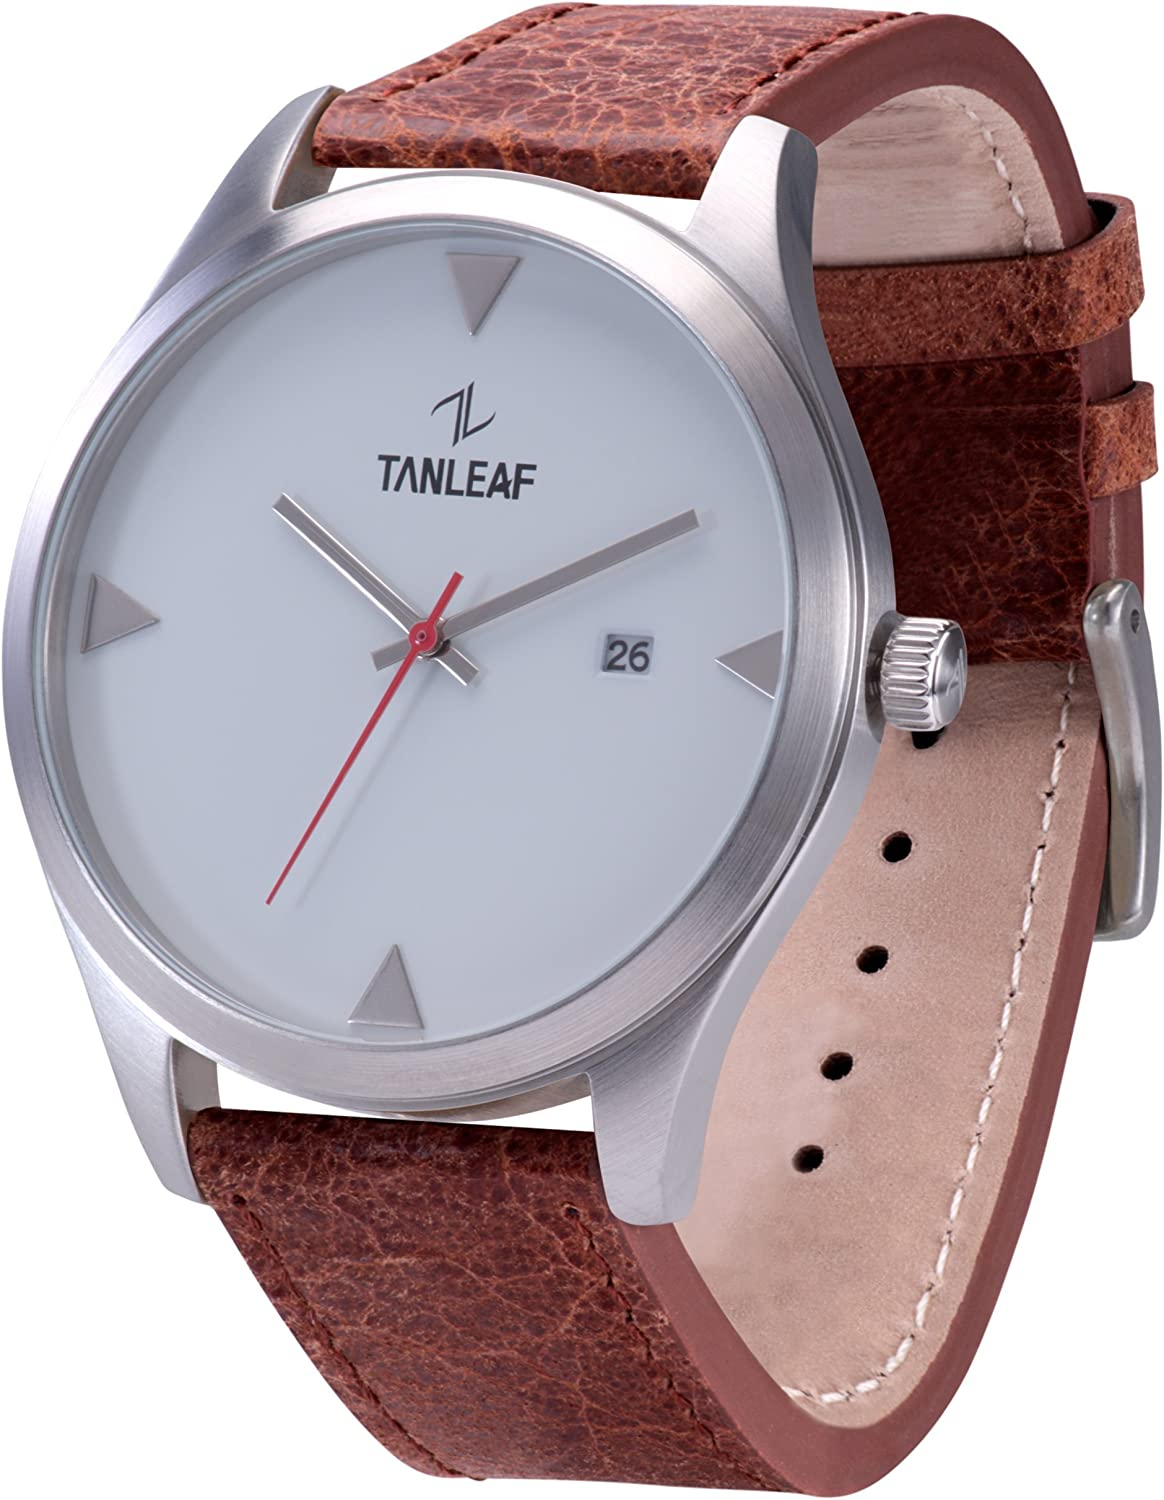 TanLeaf 4-Pillars Collection – The Anti-SmartWatch